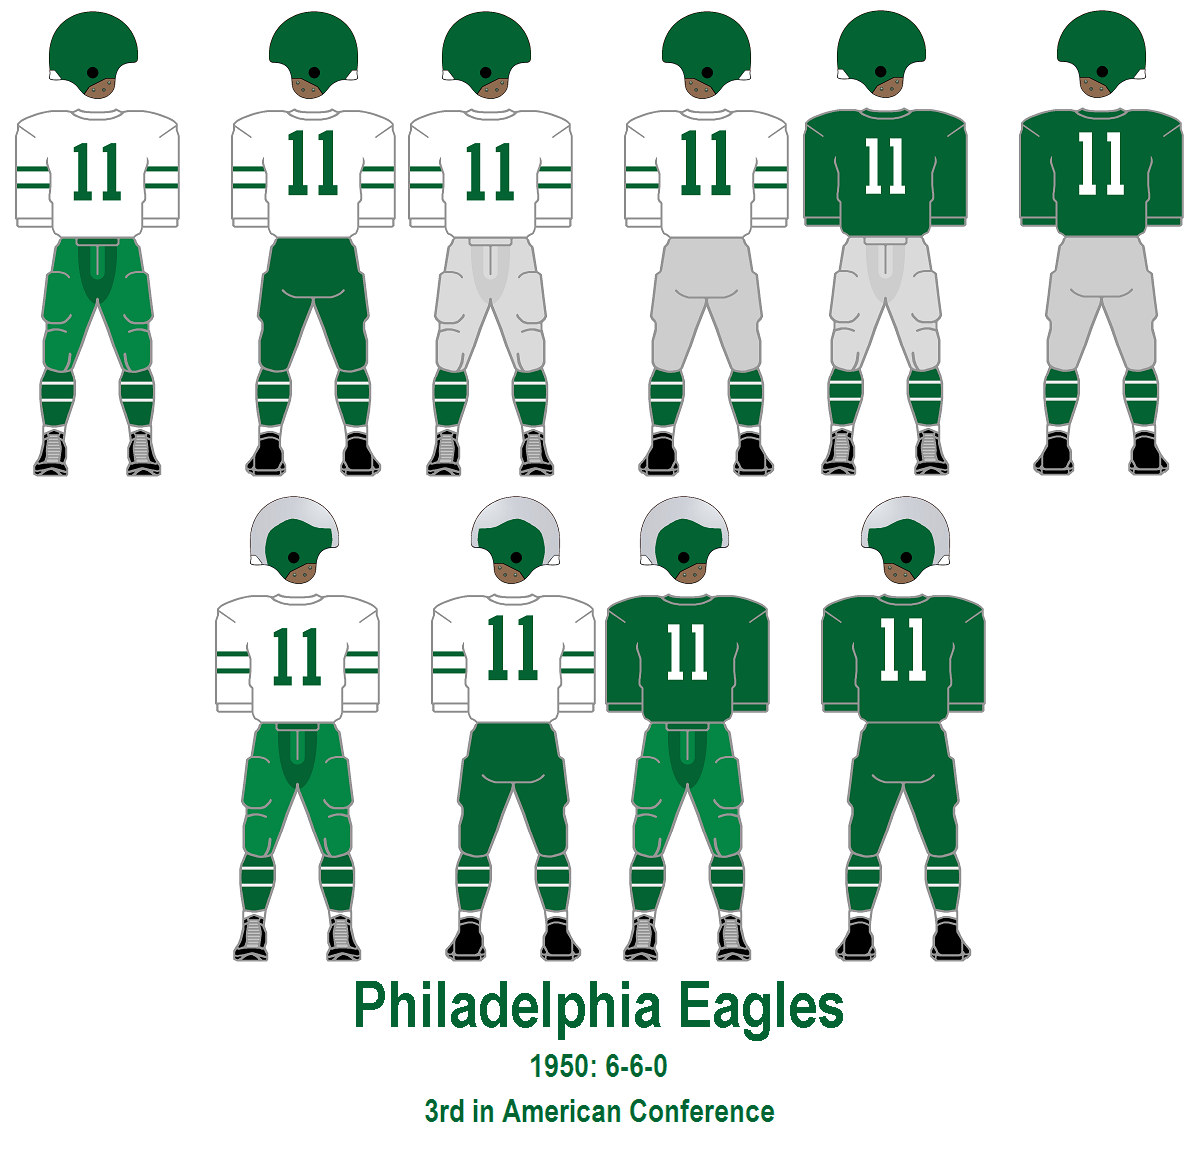 b496261c The combos: A: silver-green helmets, white jersey, green pants, B: silver- green helmets, green jersey, green pants, C: green ...